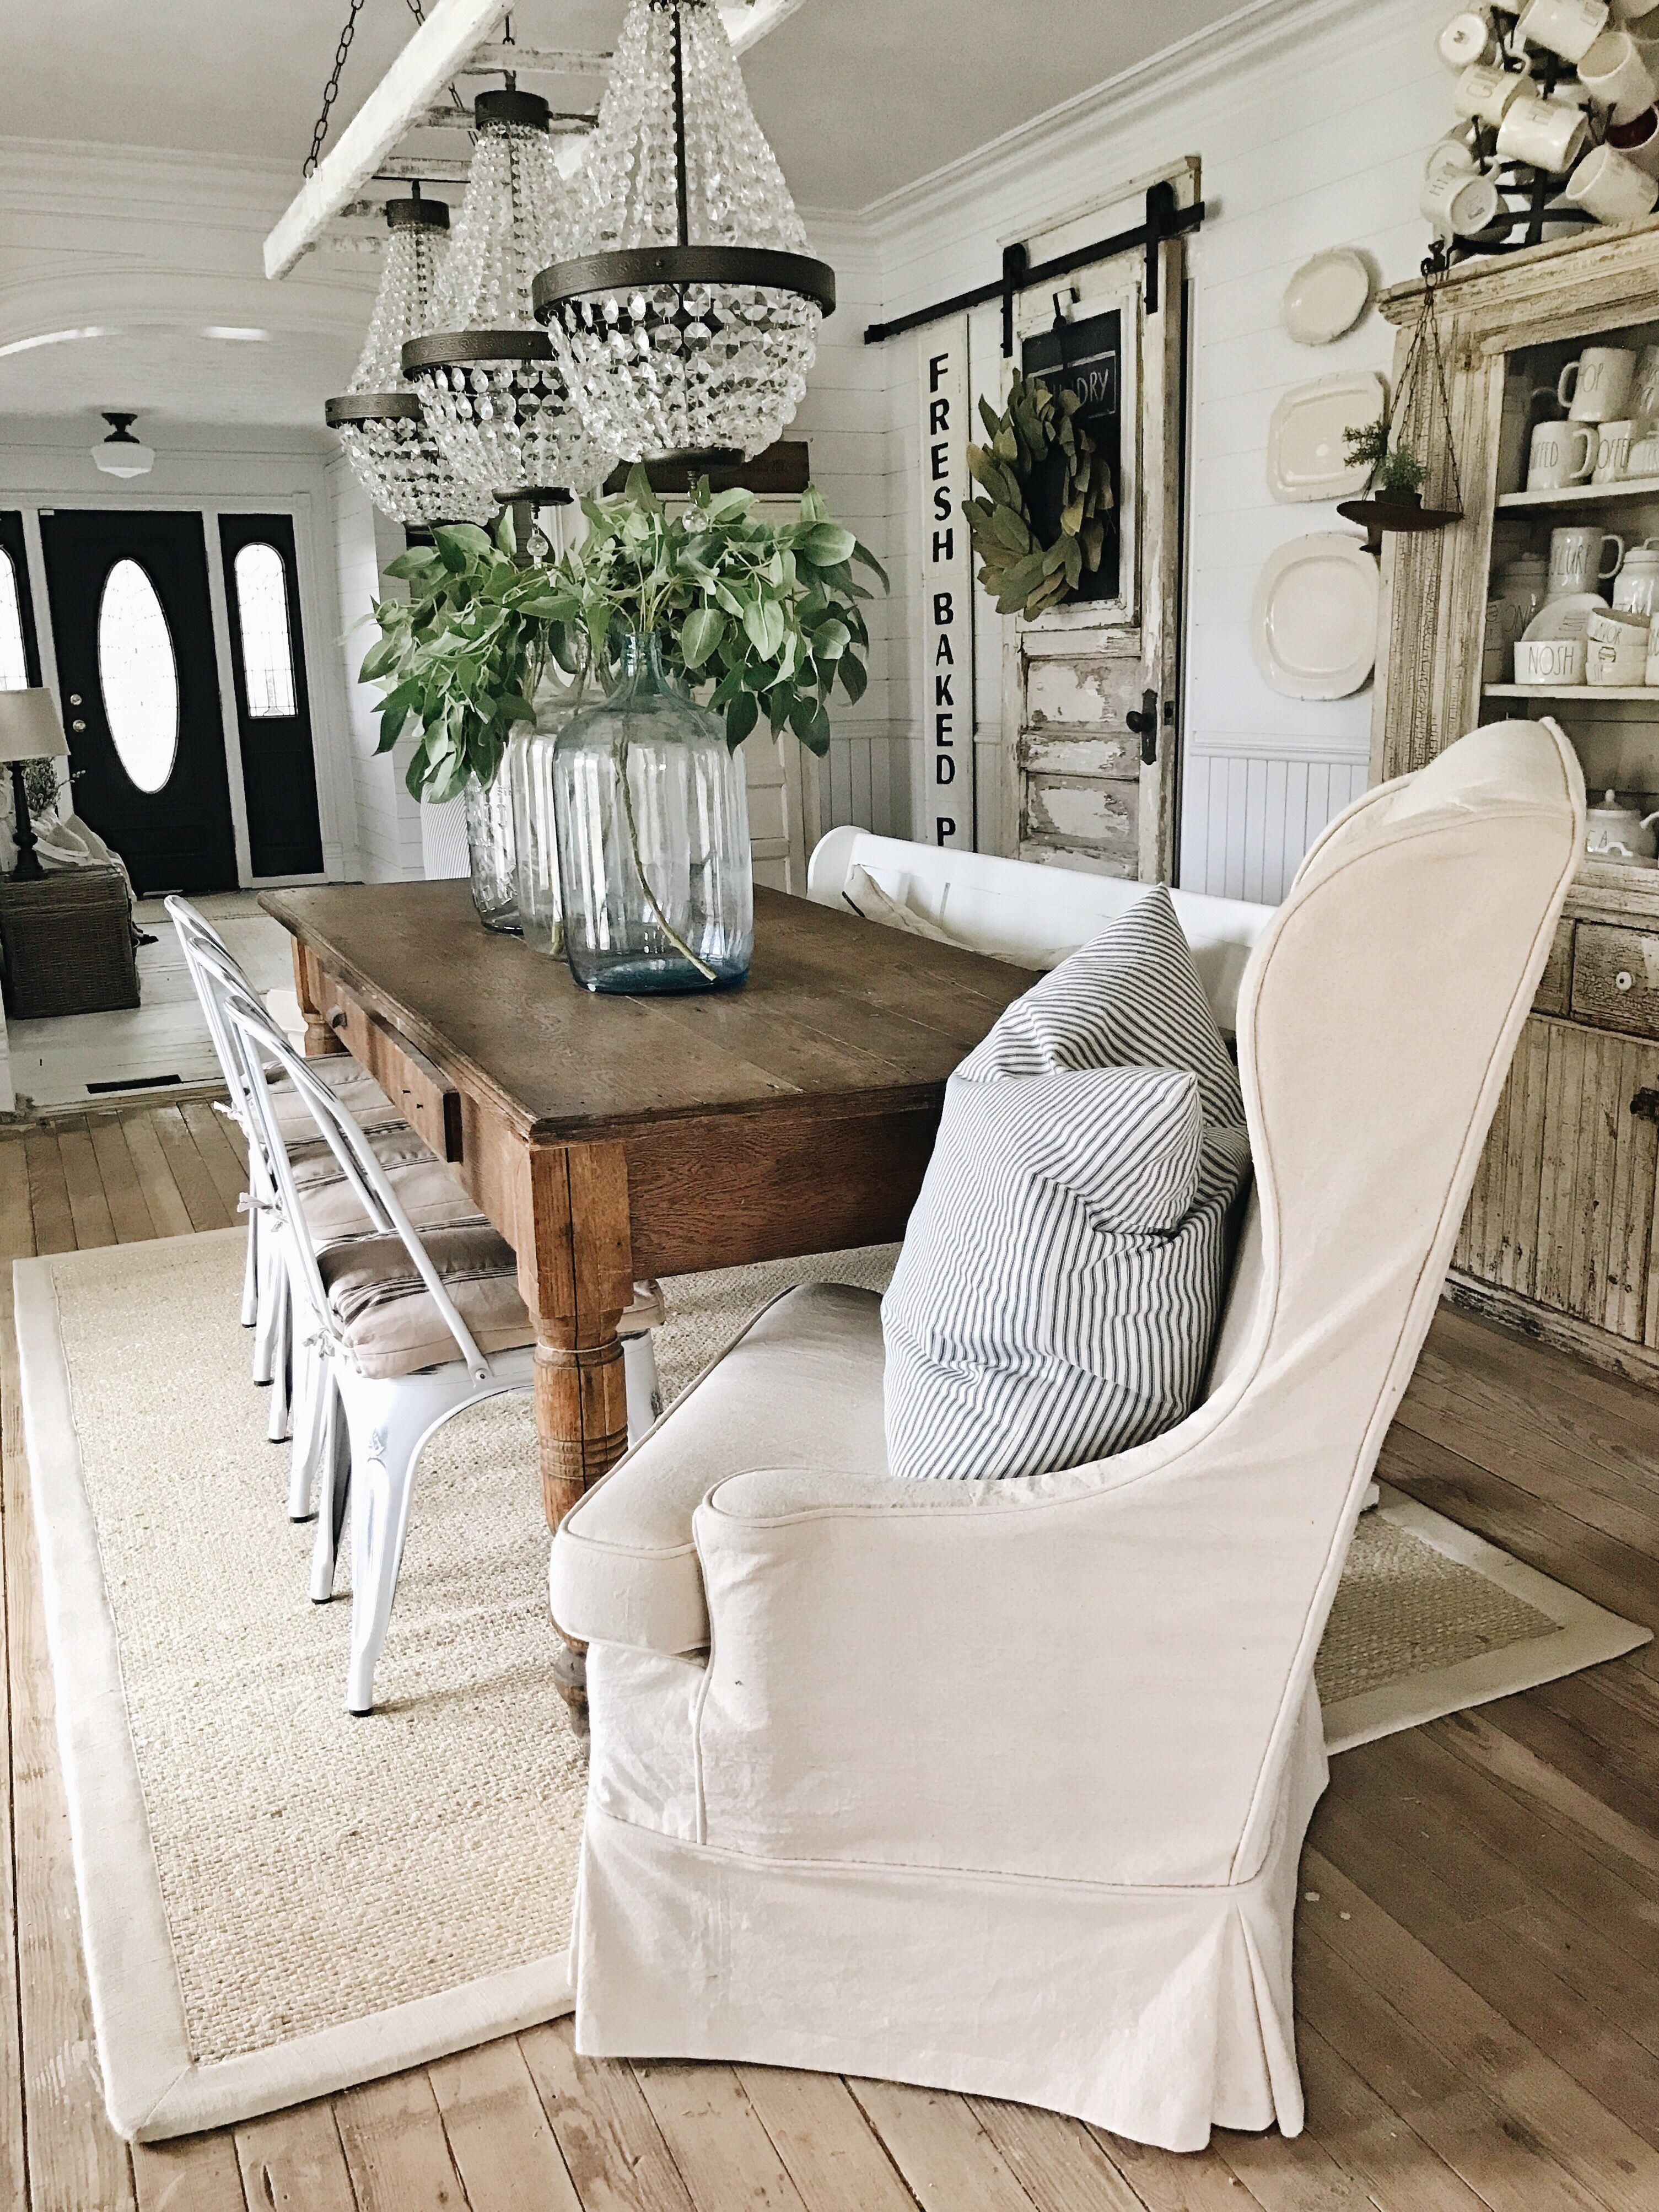 hardwood floor decorating ideas of inspirational dining room decor ideas pinterest levitrainformacion com with dining room decor ideas pinterest 8 fetching farmhouse dining room chandelier at dining room chandelier